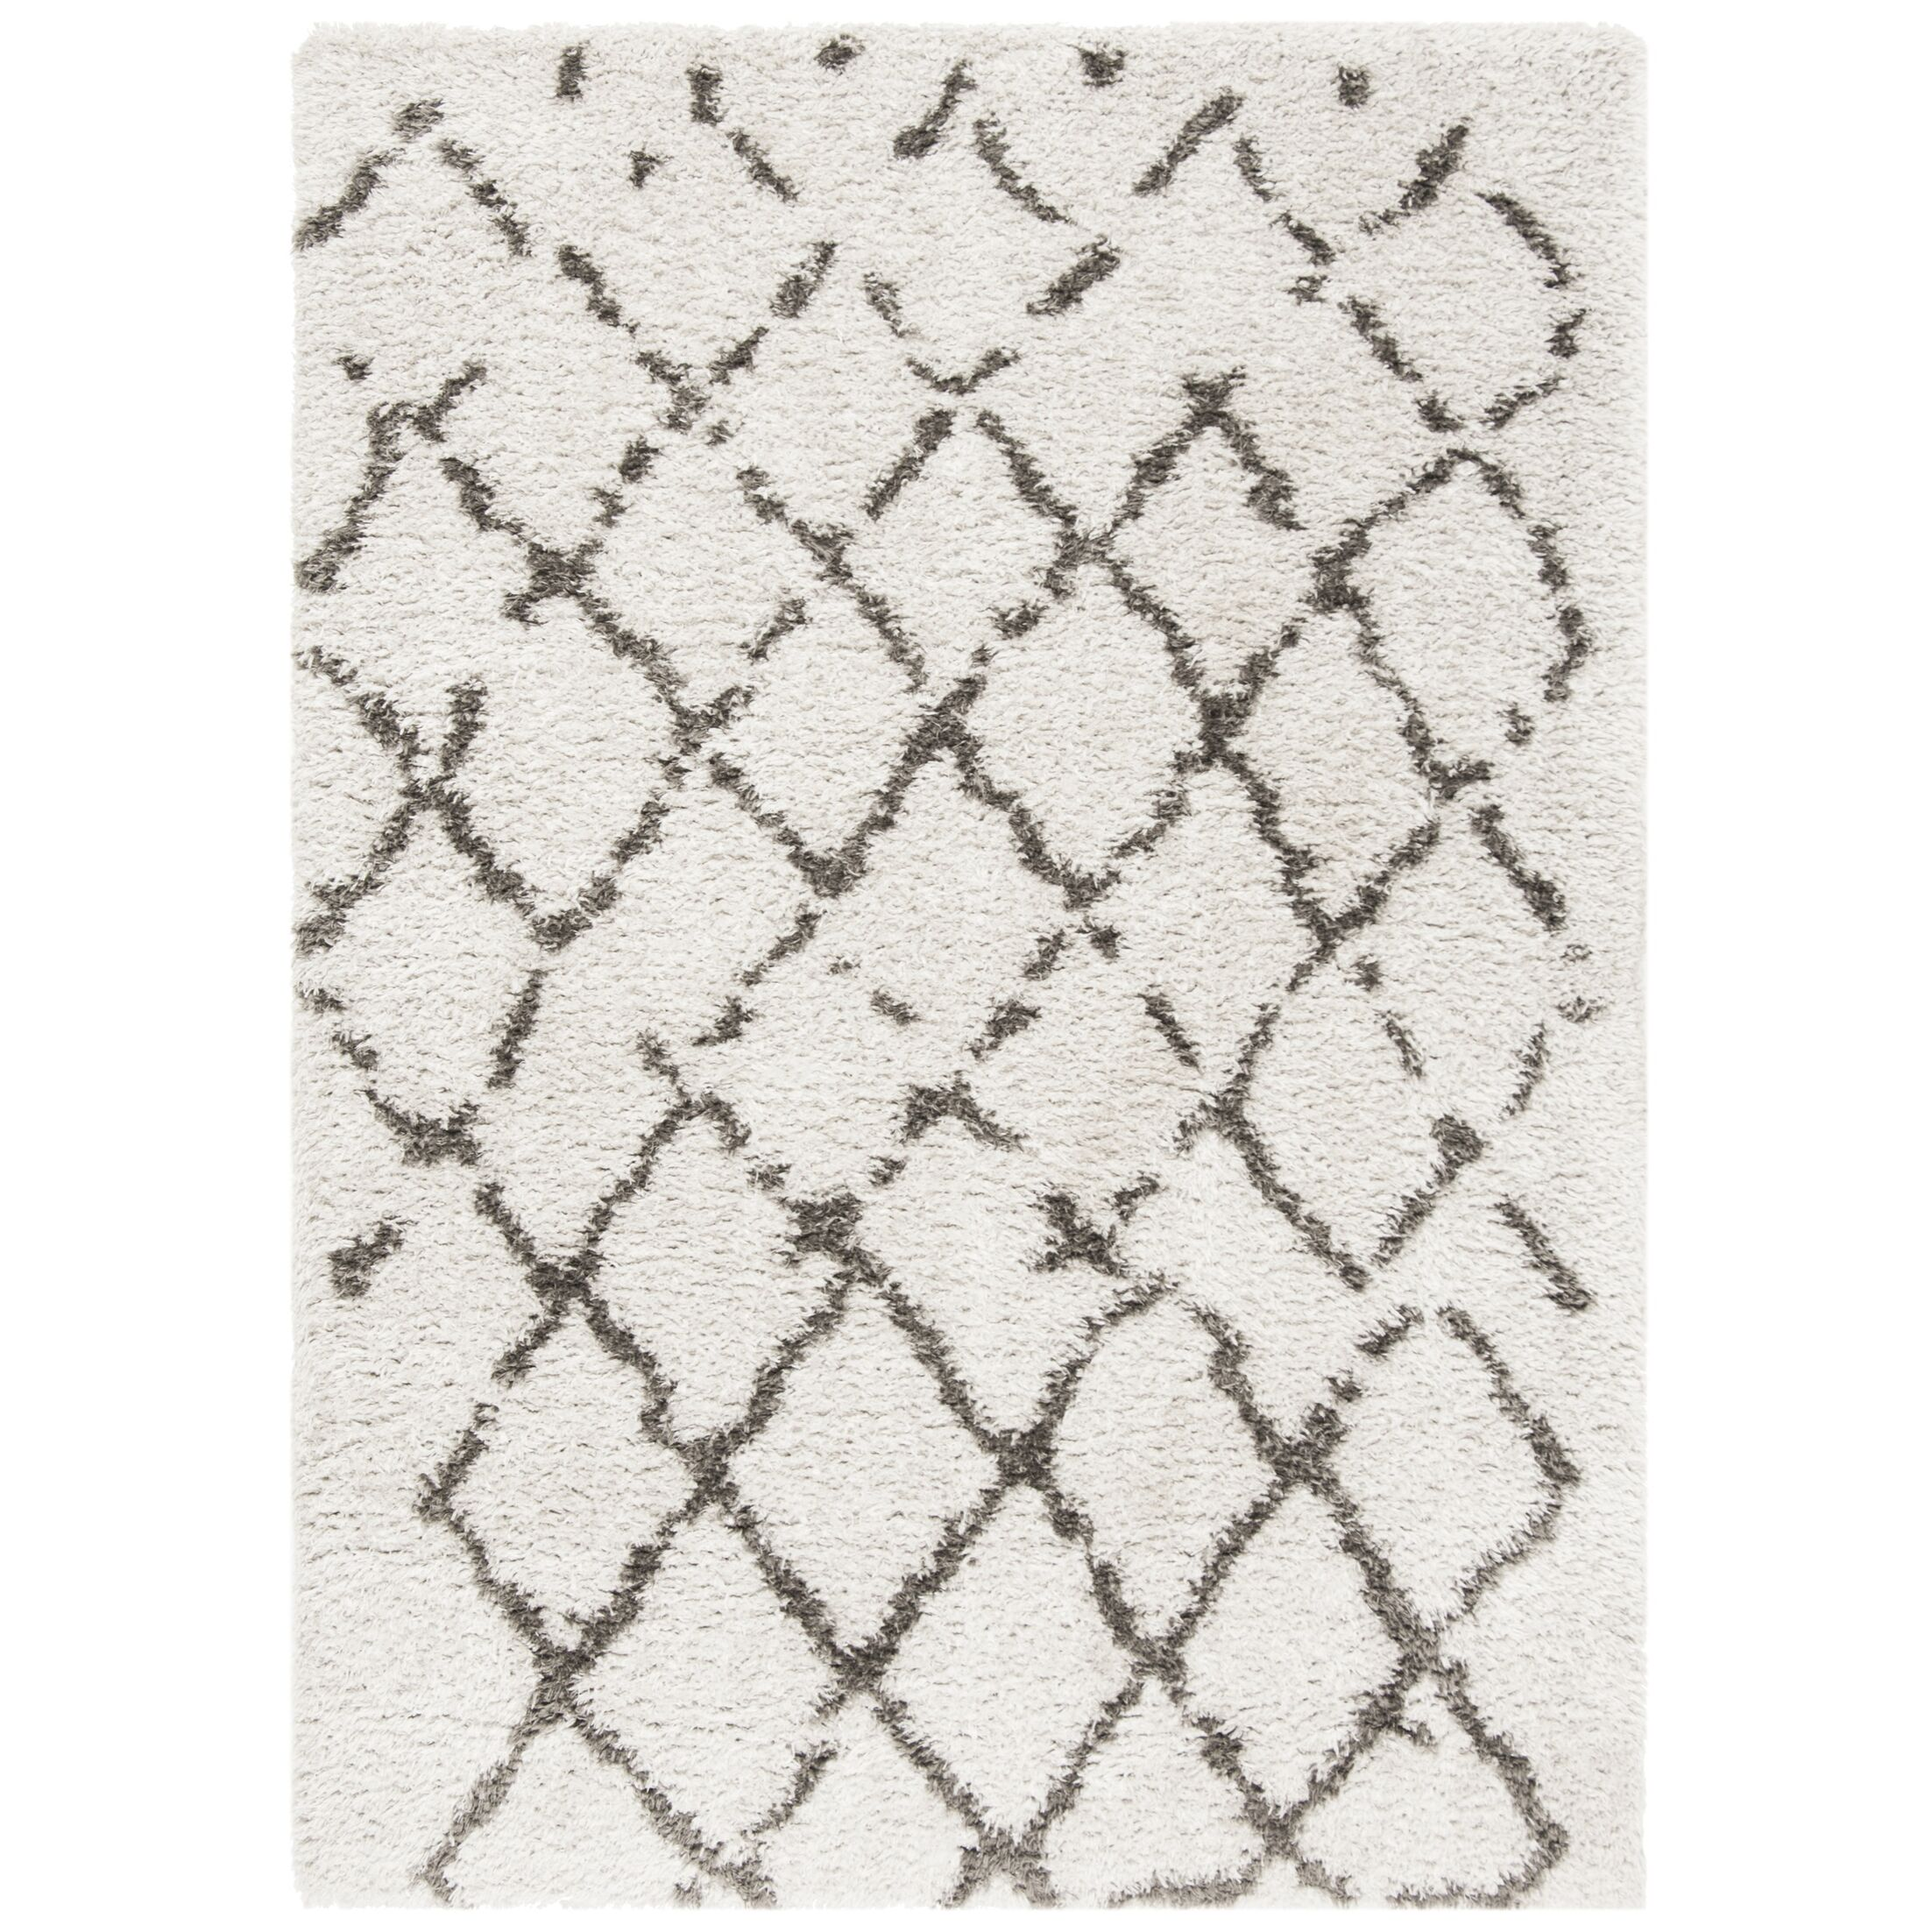 Casperson Silver/Charcoal Area Rug Rug Size: Rectangle 5' 3